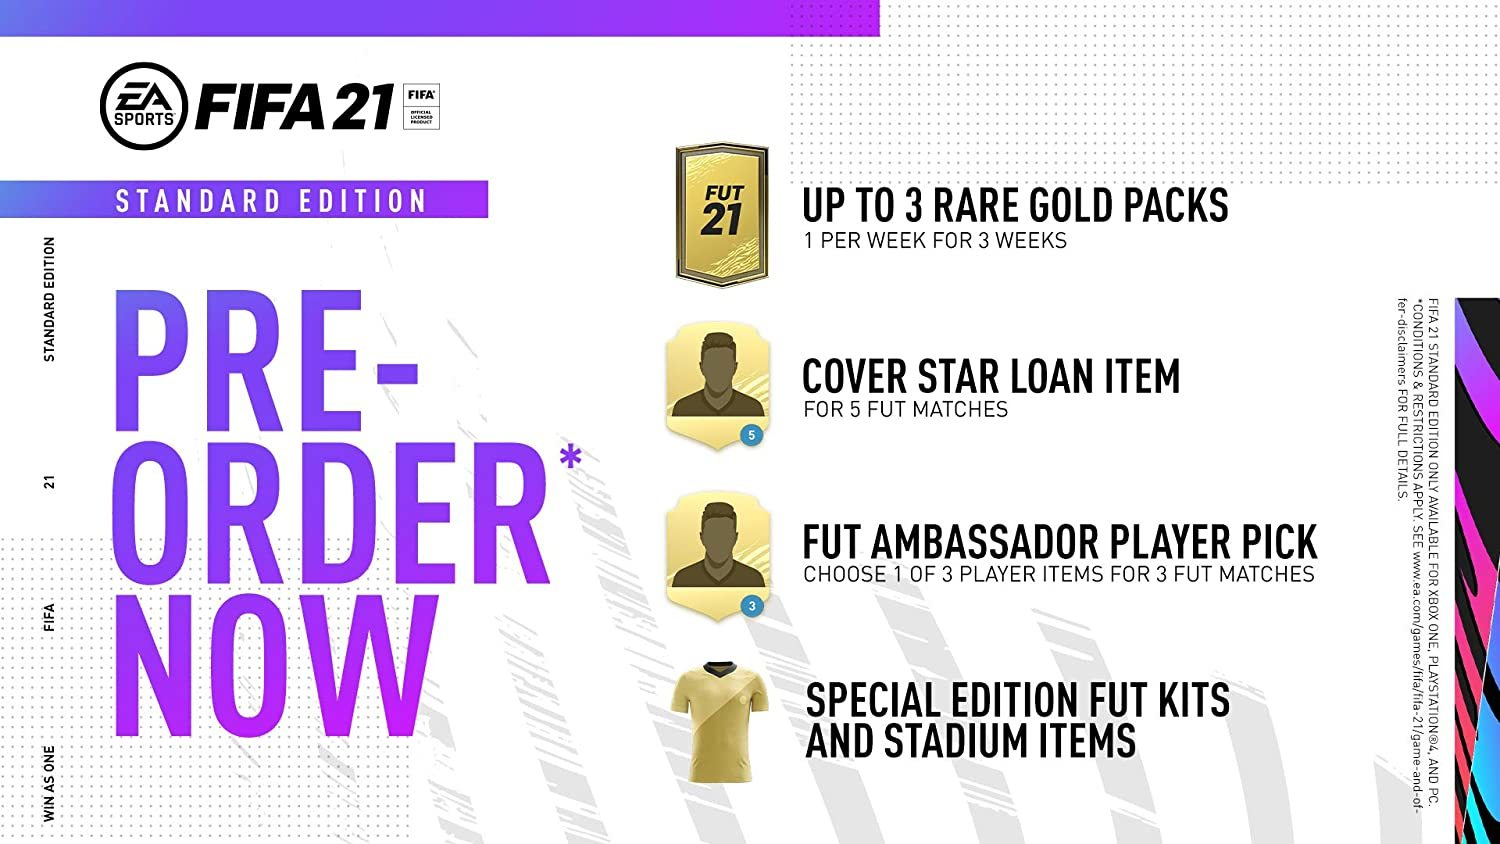 FIFA 21 Standard Edition pre-order rewards